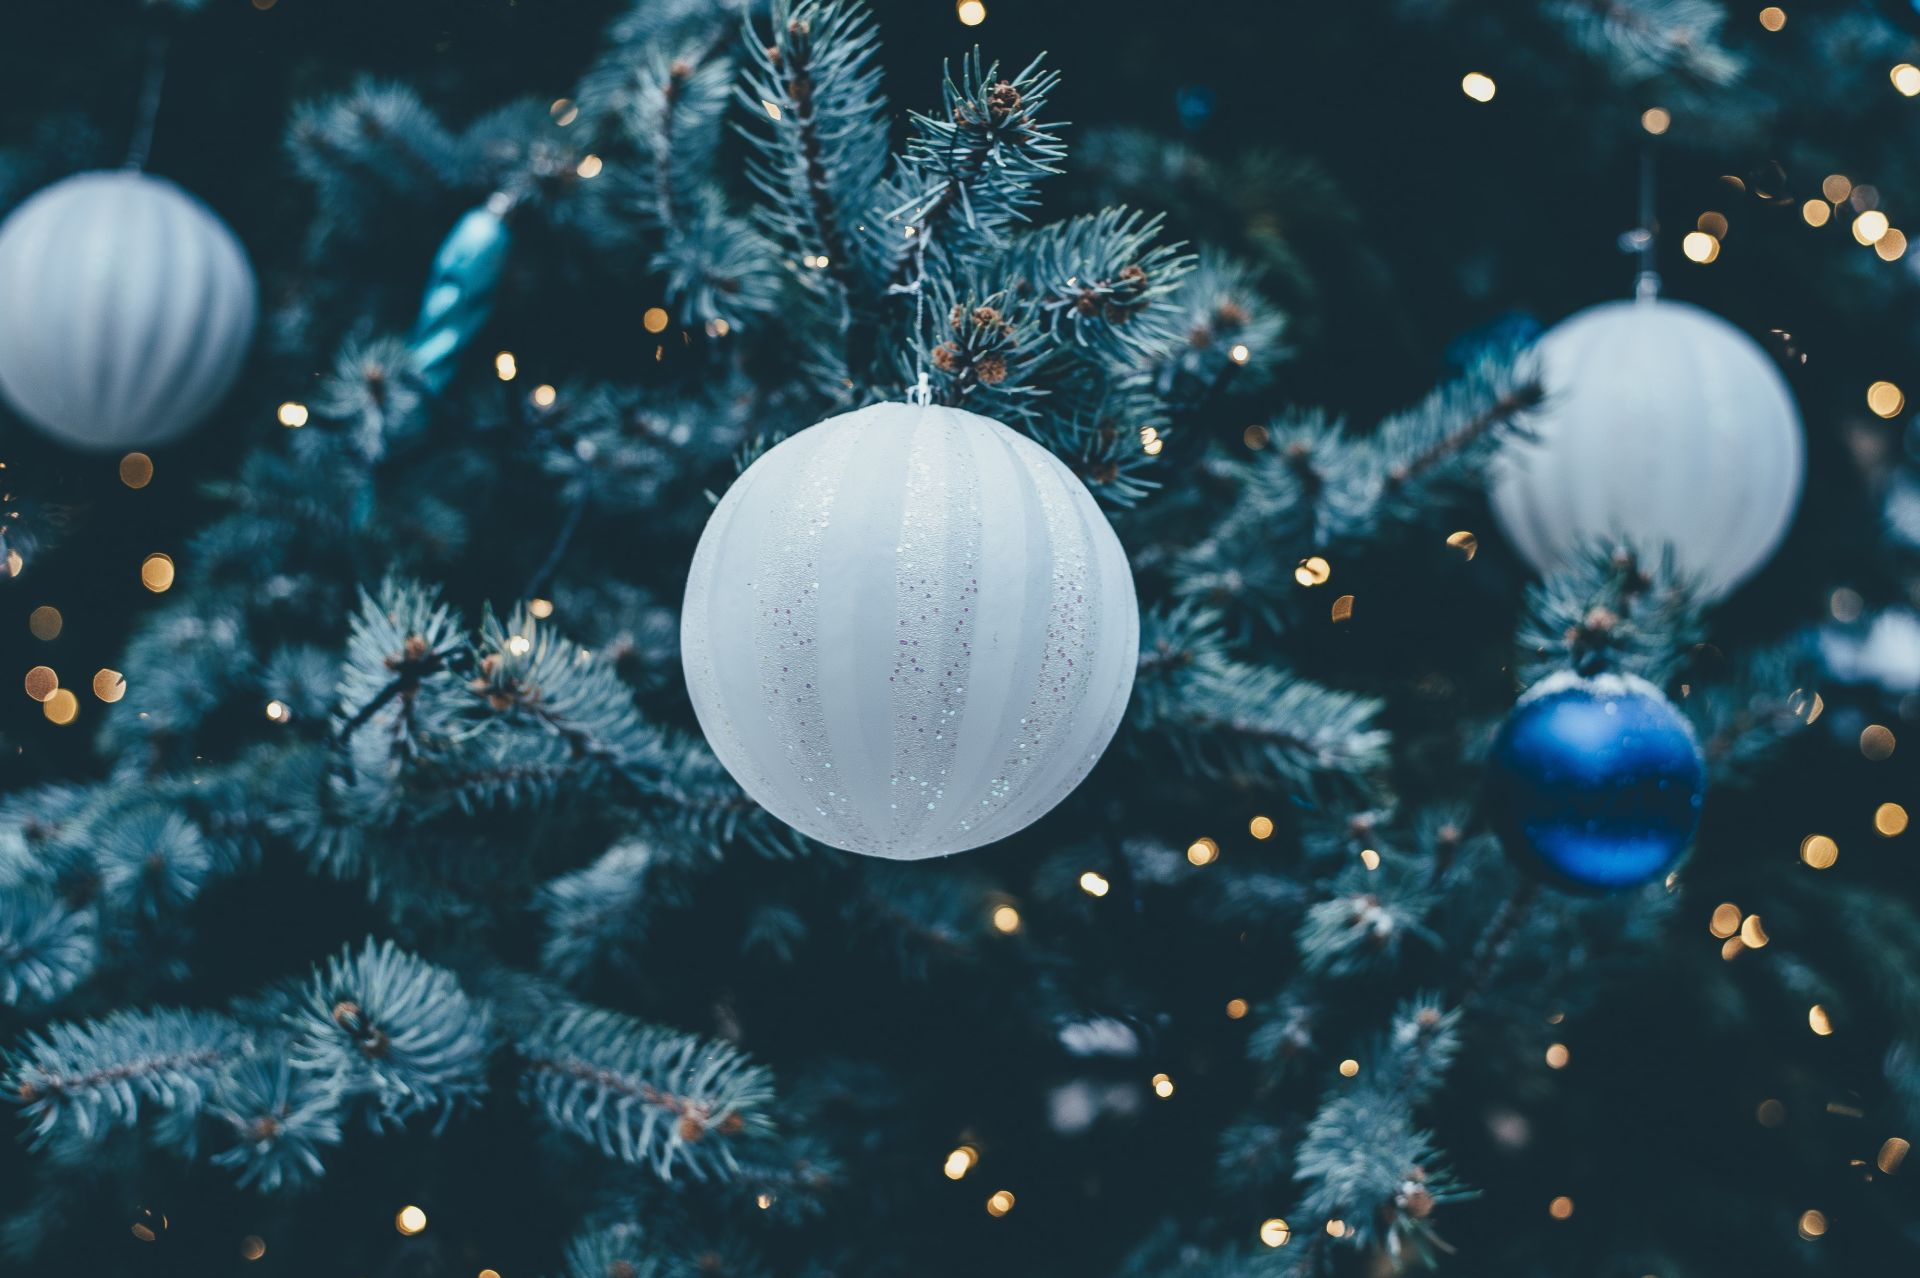 Fun, festive and socially-distanced activities to do in winter this year